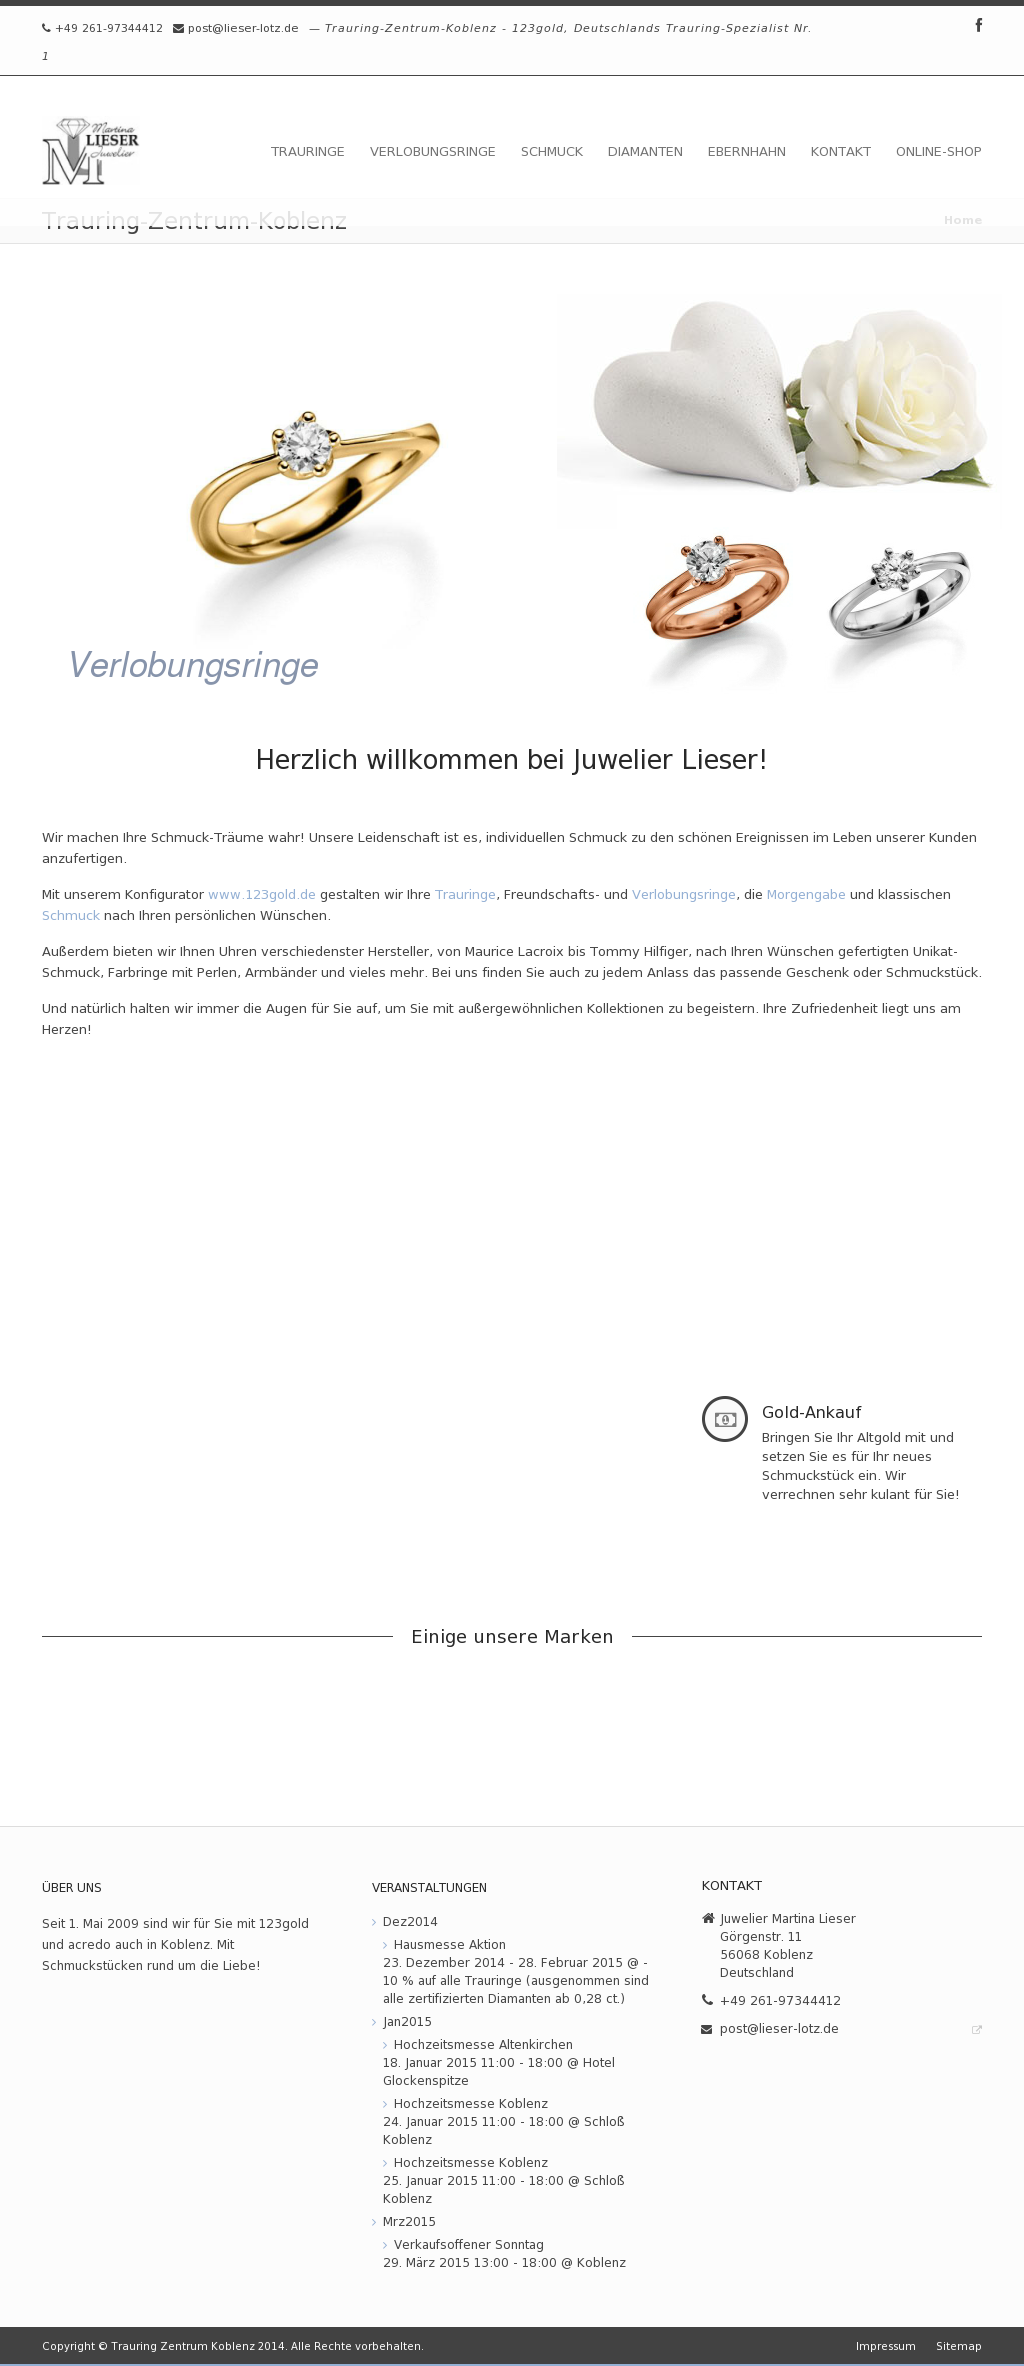 Juwelier Lieser 123gold Westerwald Competitors Revenue And